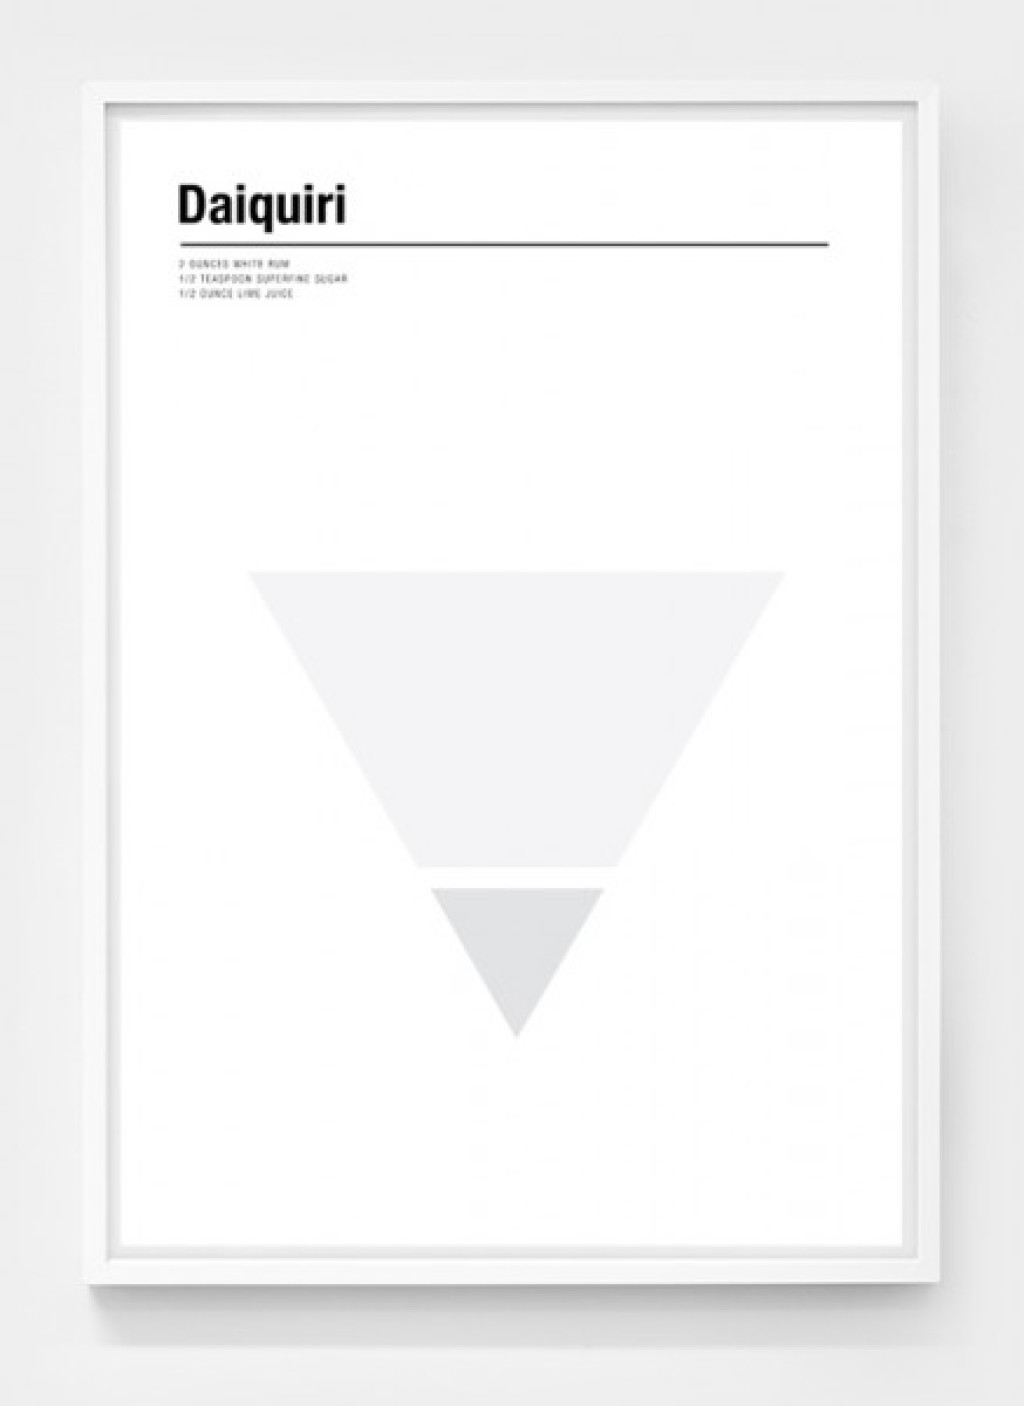 daiquiri-minimalist-cocktail-poster-by-nick-barclay-designs